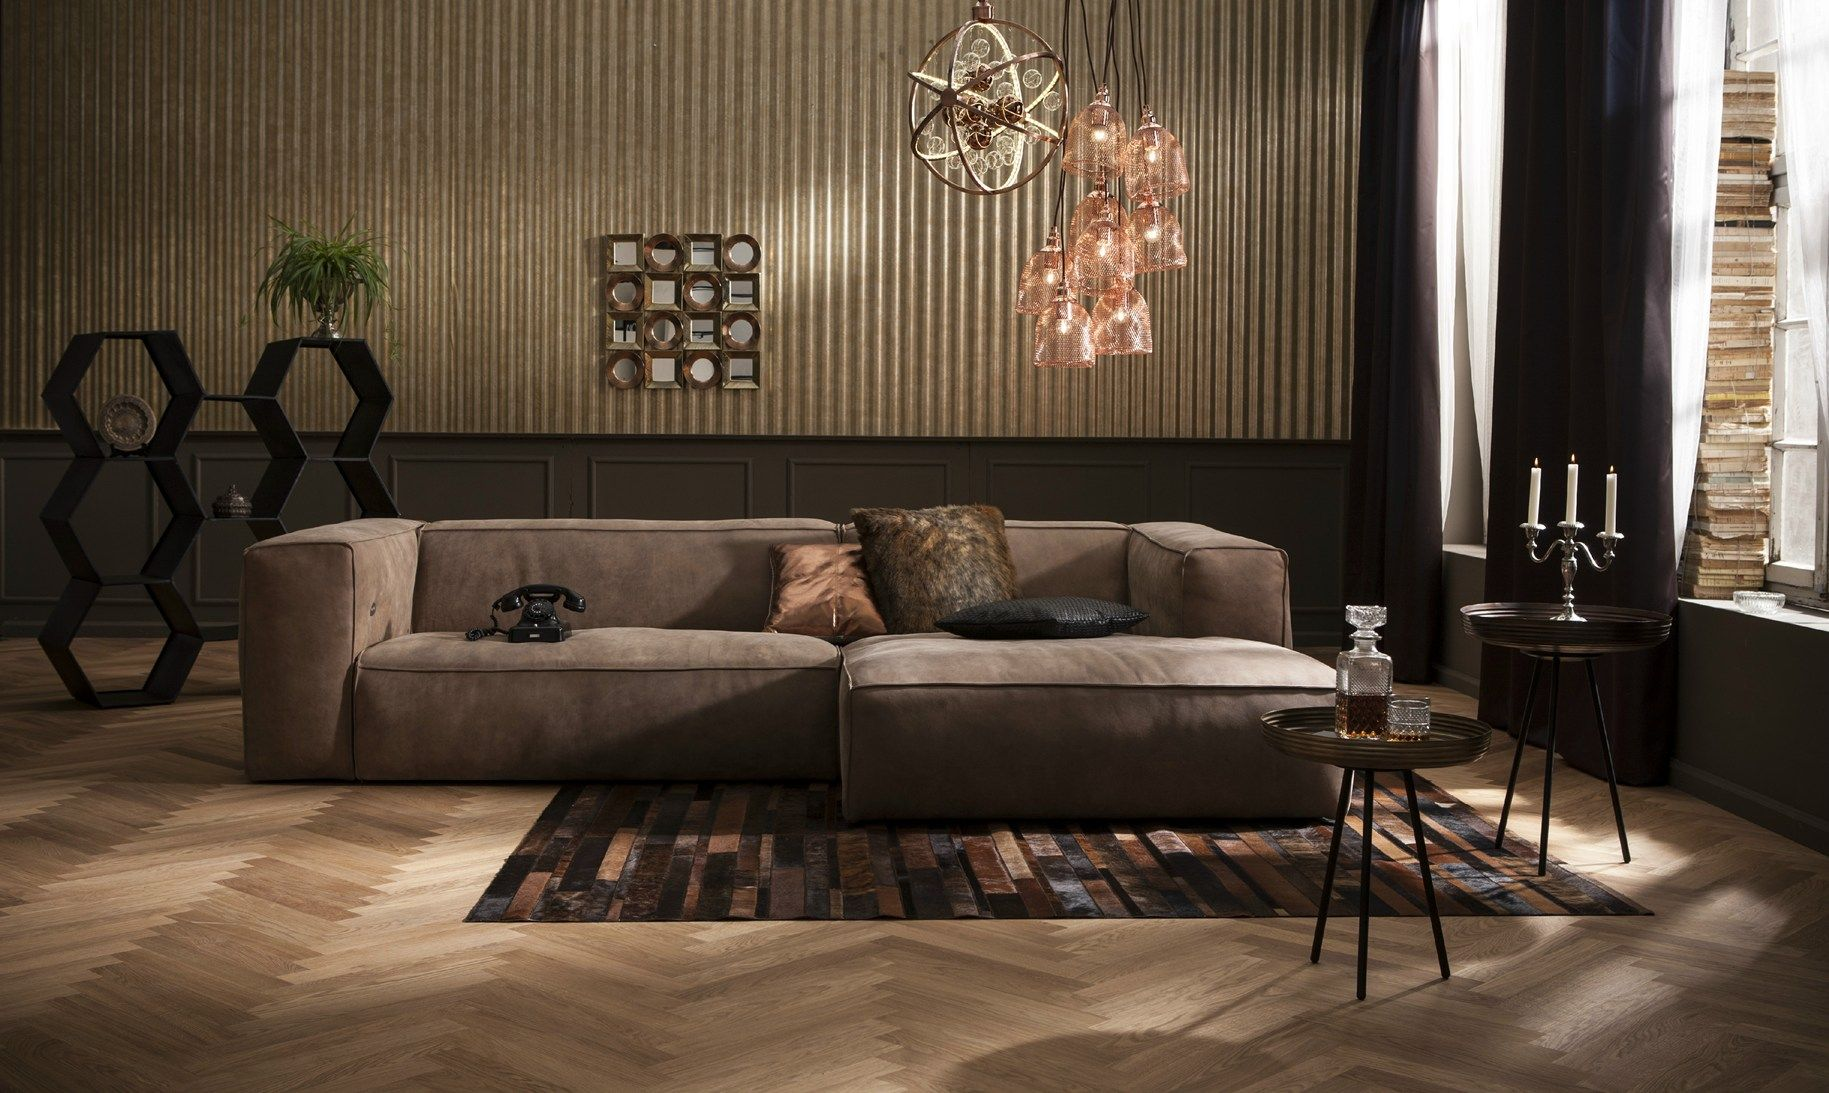 Kare design at imm cologne - Kare design wohnzimmer ...